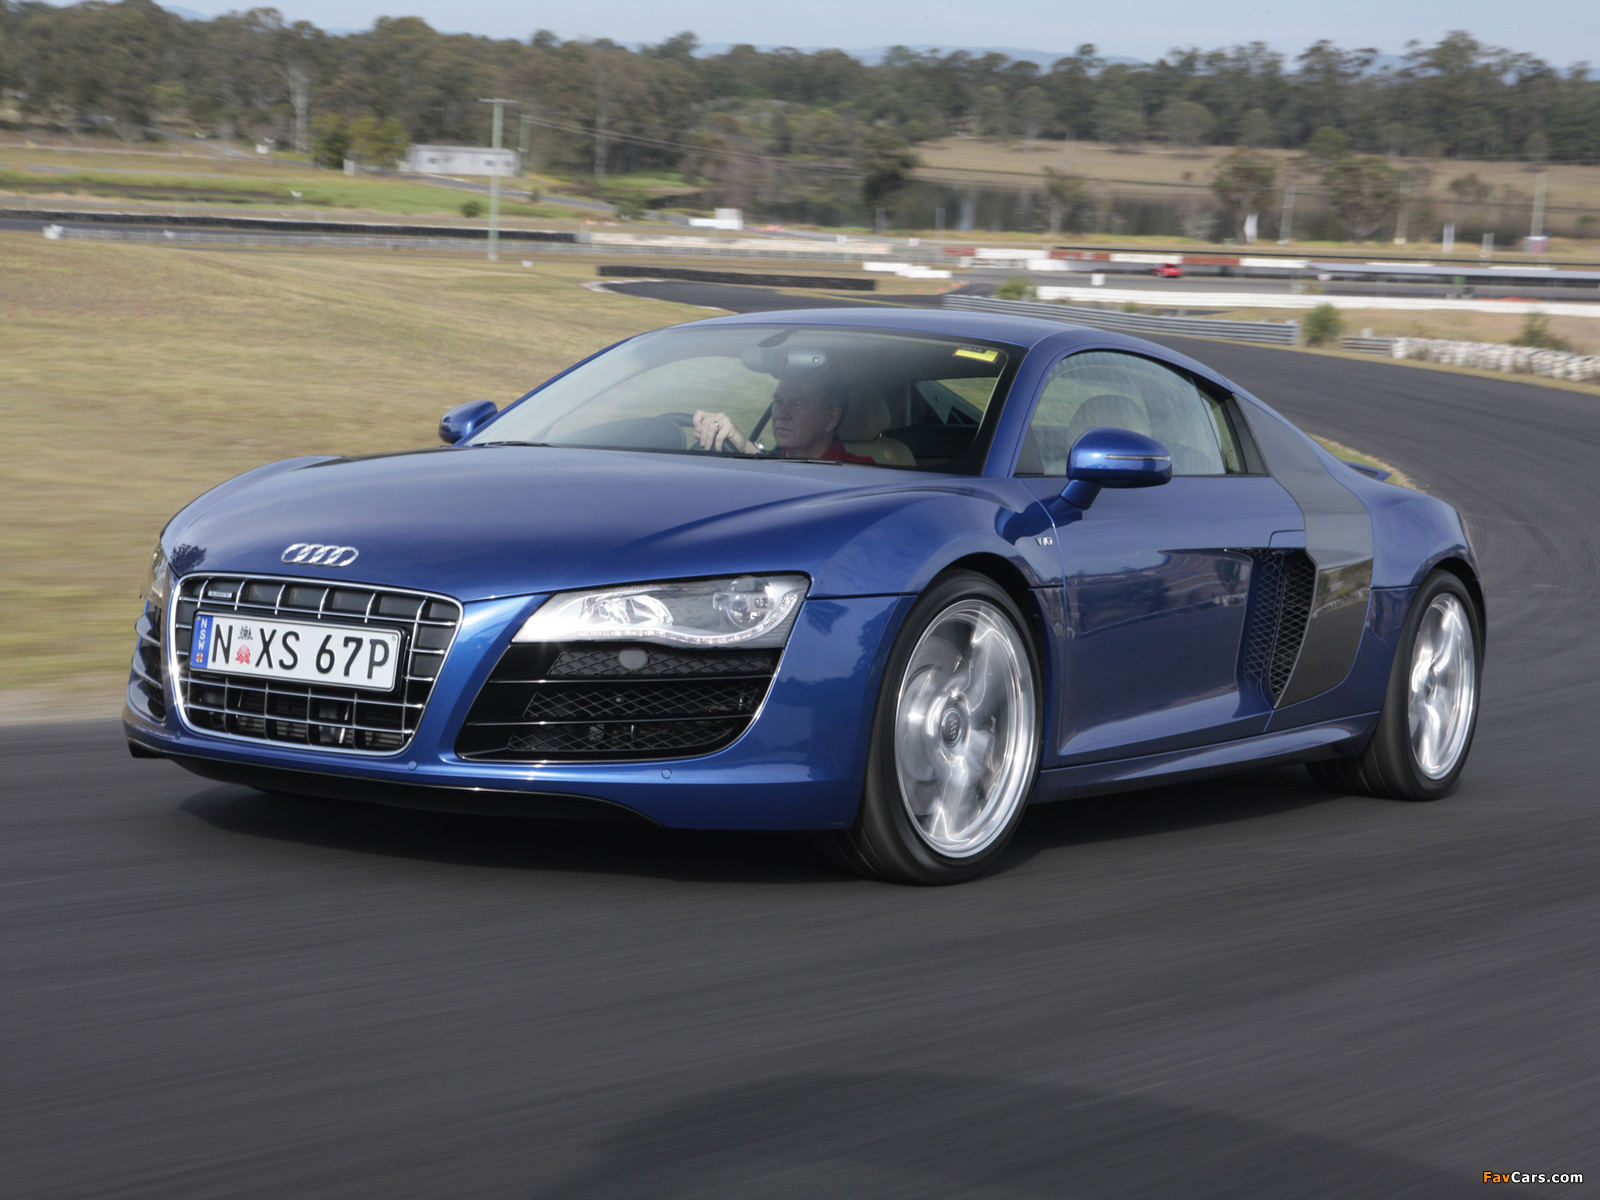 pictures of audi r8 v10 au spec 2009 12 1600x1200. Black Bedroom Furniture Sets. Home Design Ideas